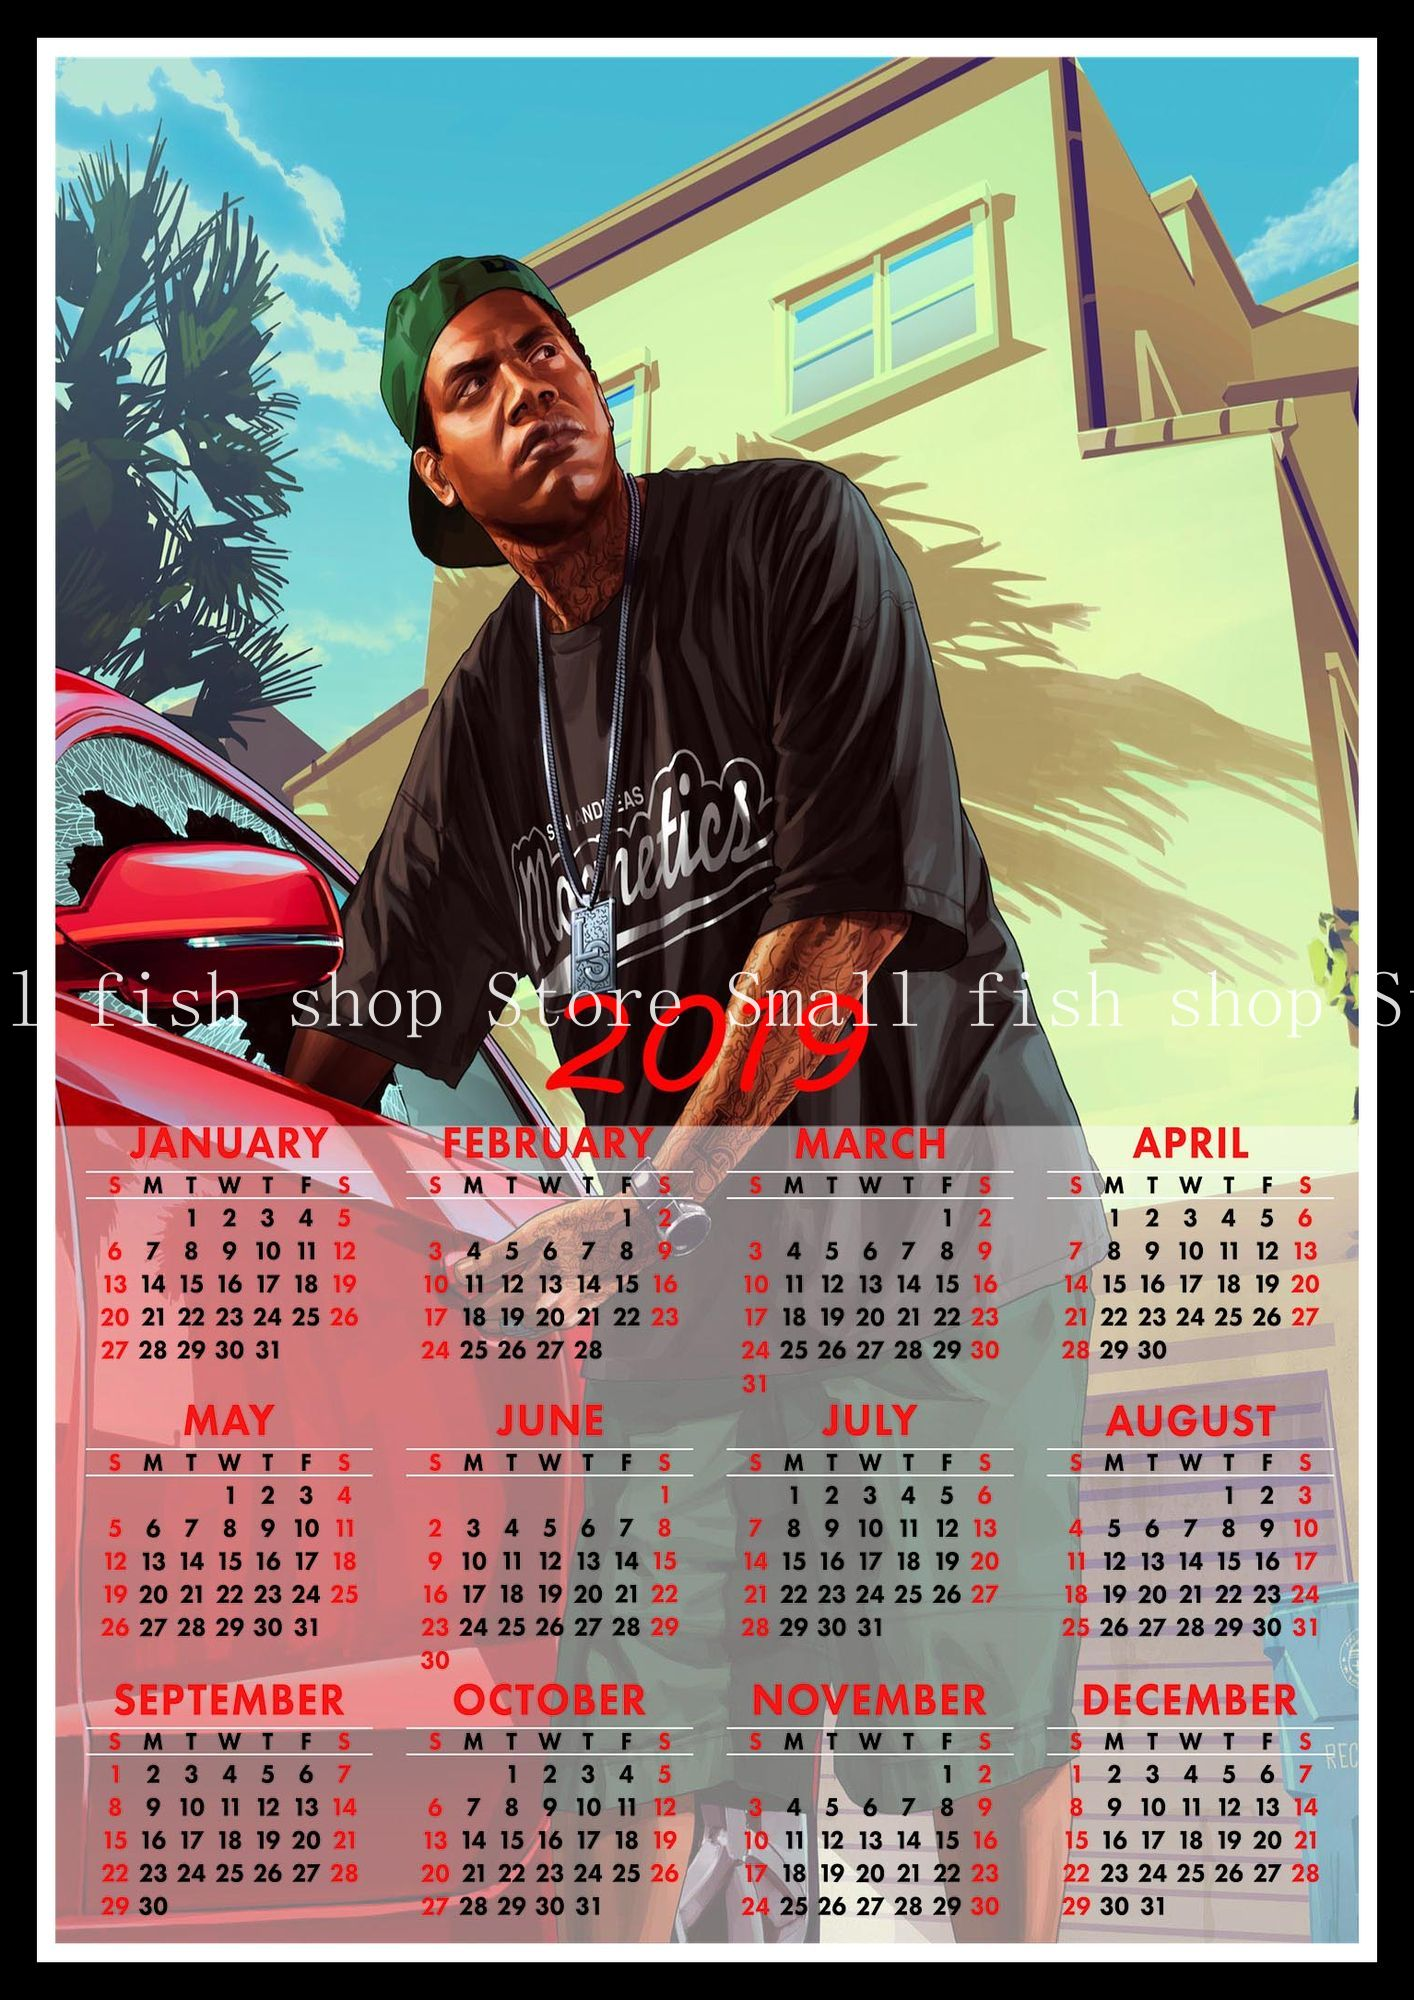 US $2 18 9% OFF|Grand Theft Auto game 2019 calendar poster Home Furnishing  decorative white coated paper Wall Sticker Home Decora-in Wall Stickers